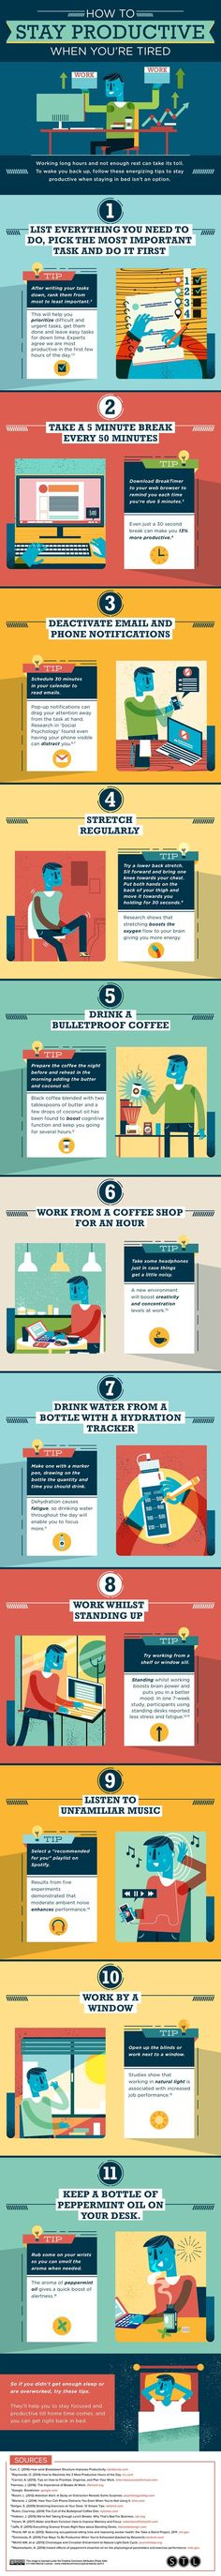 Productivity tips for small business owners and bloggers! Wondering how to be productive all day? If you're on a deadline, the 11 tips on this infographic will help you stay productive when you're dragging!